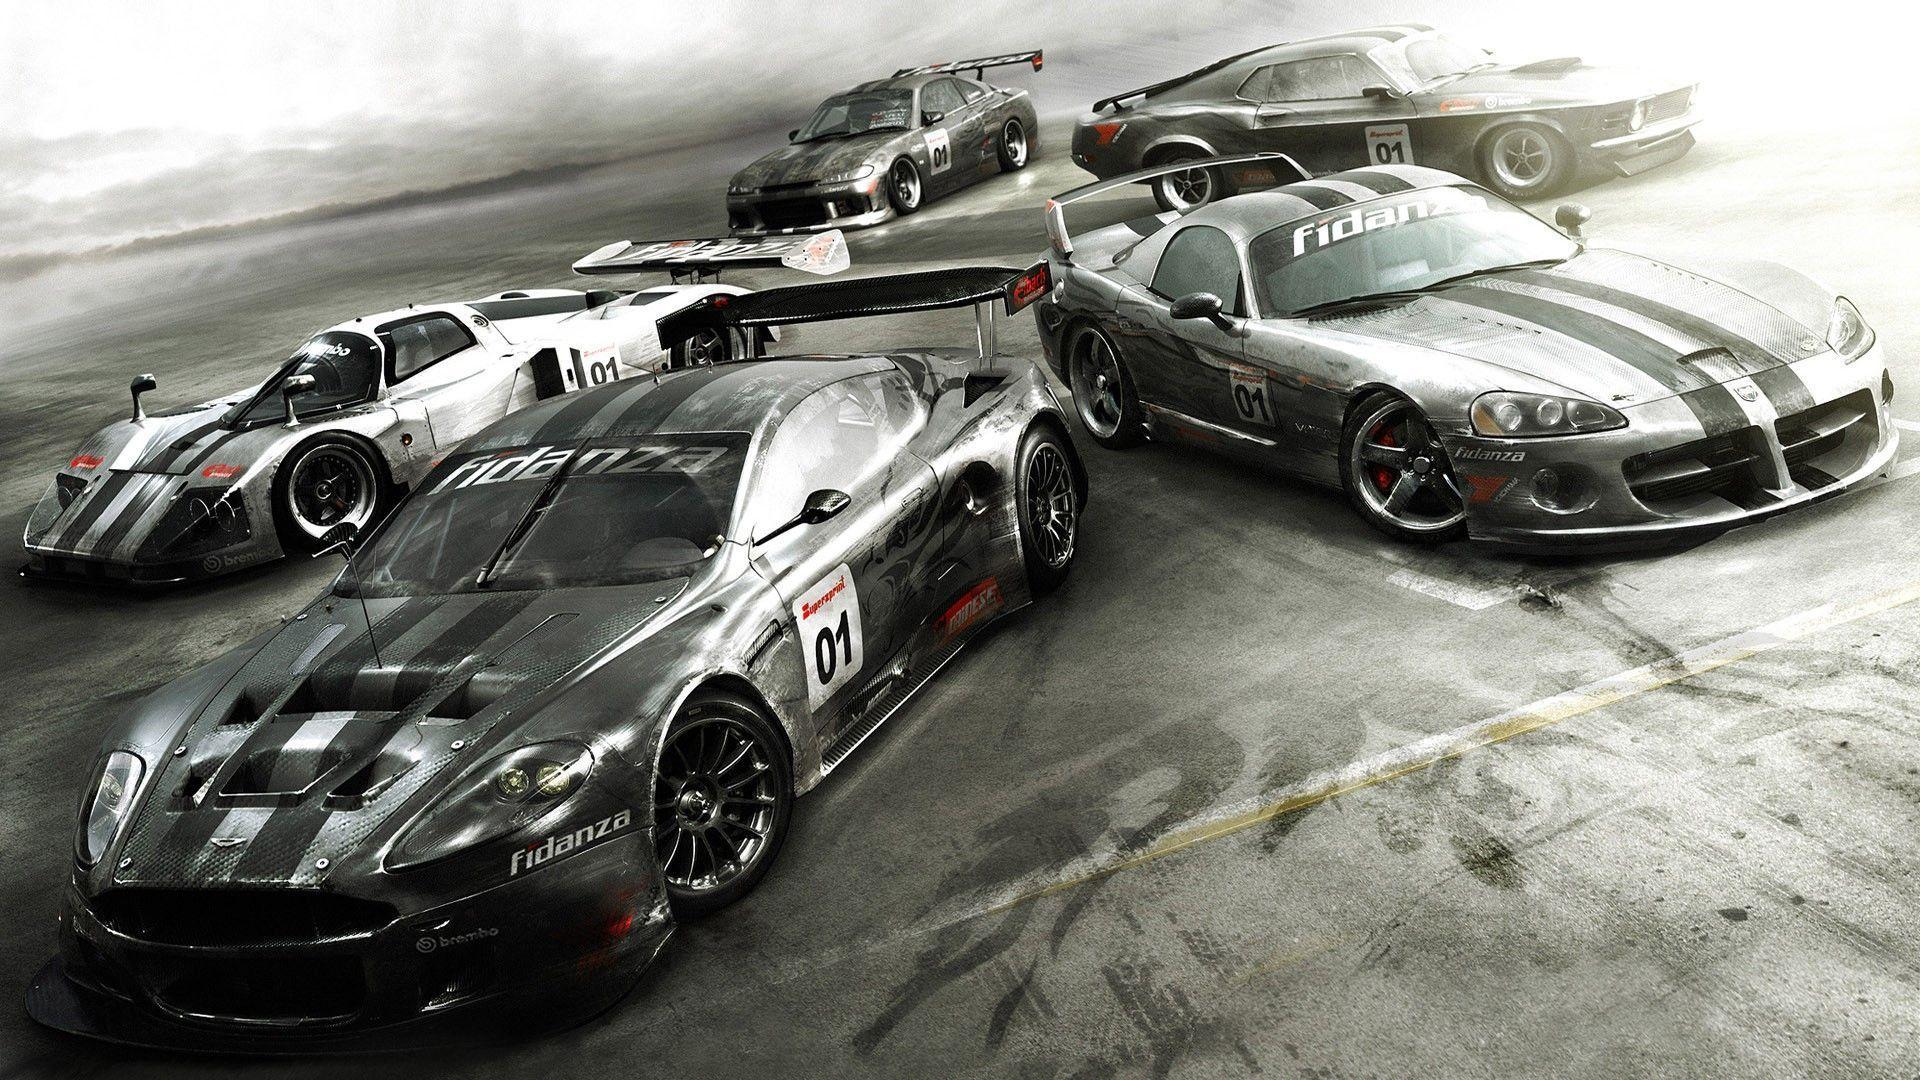 Drift Car Image 20 | hdwallpapers-